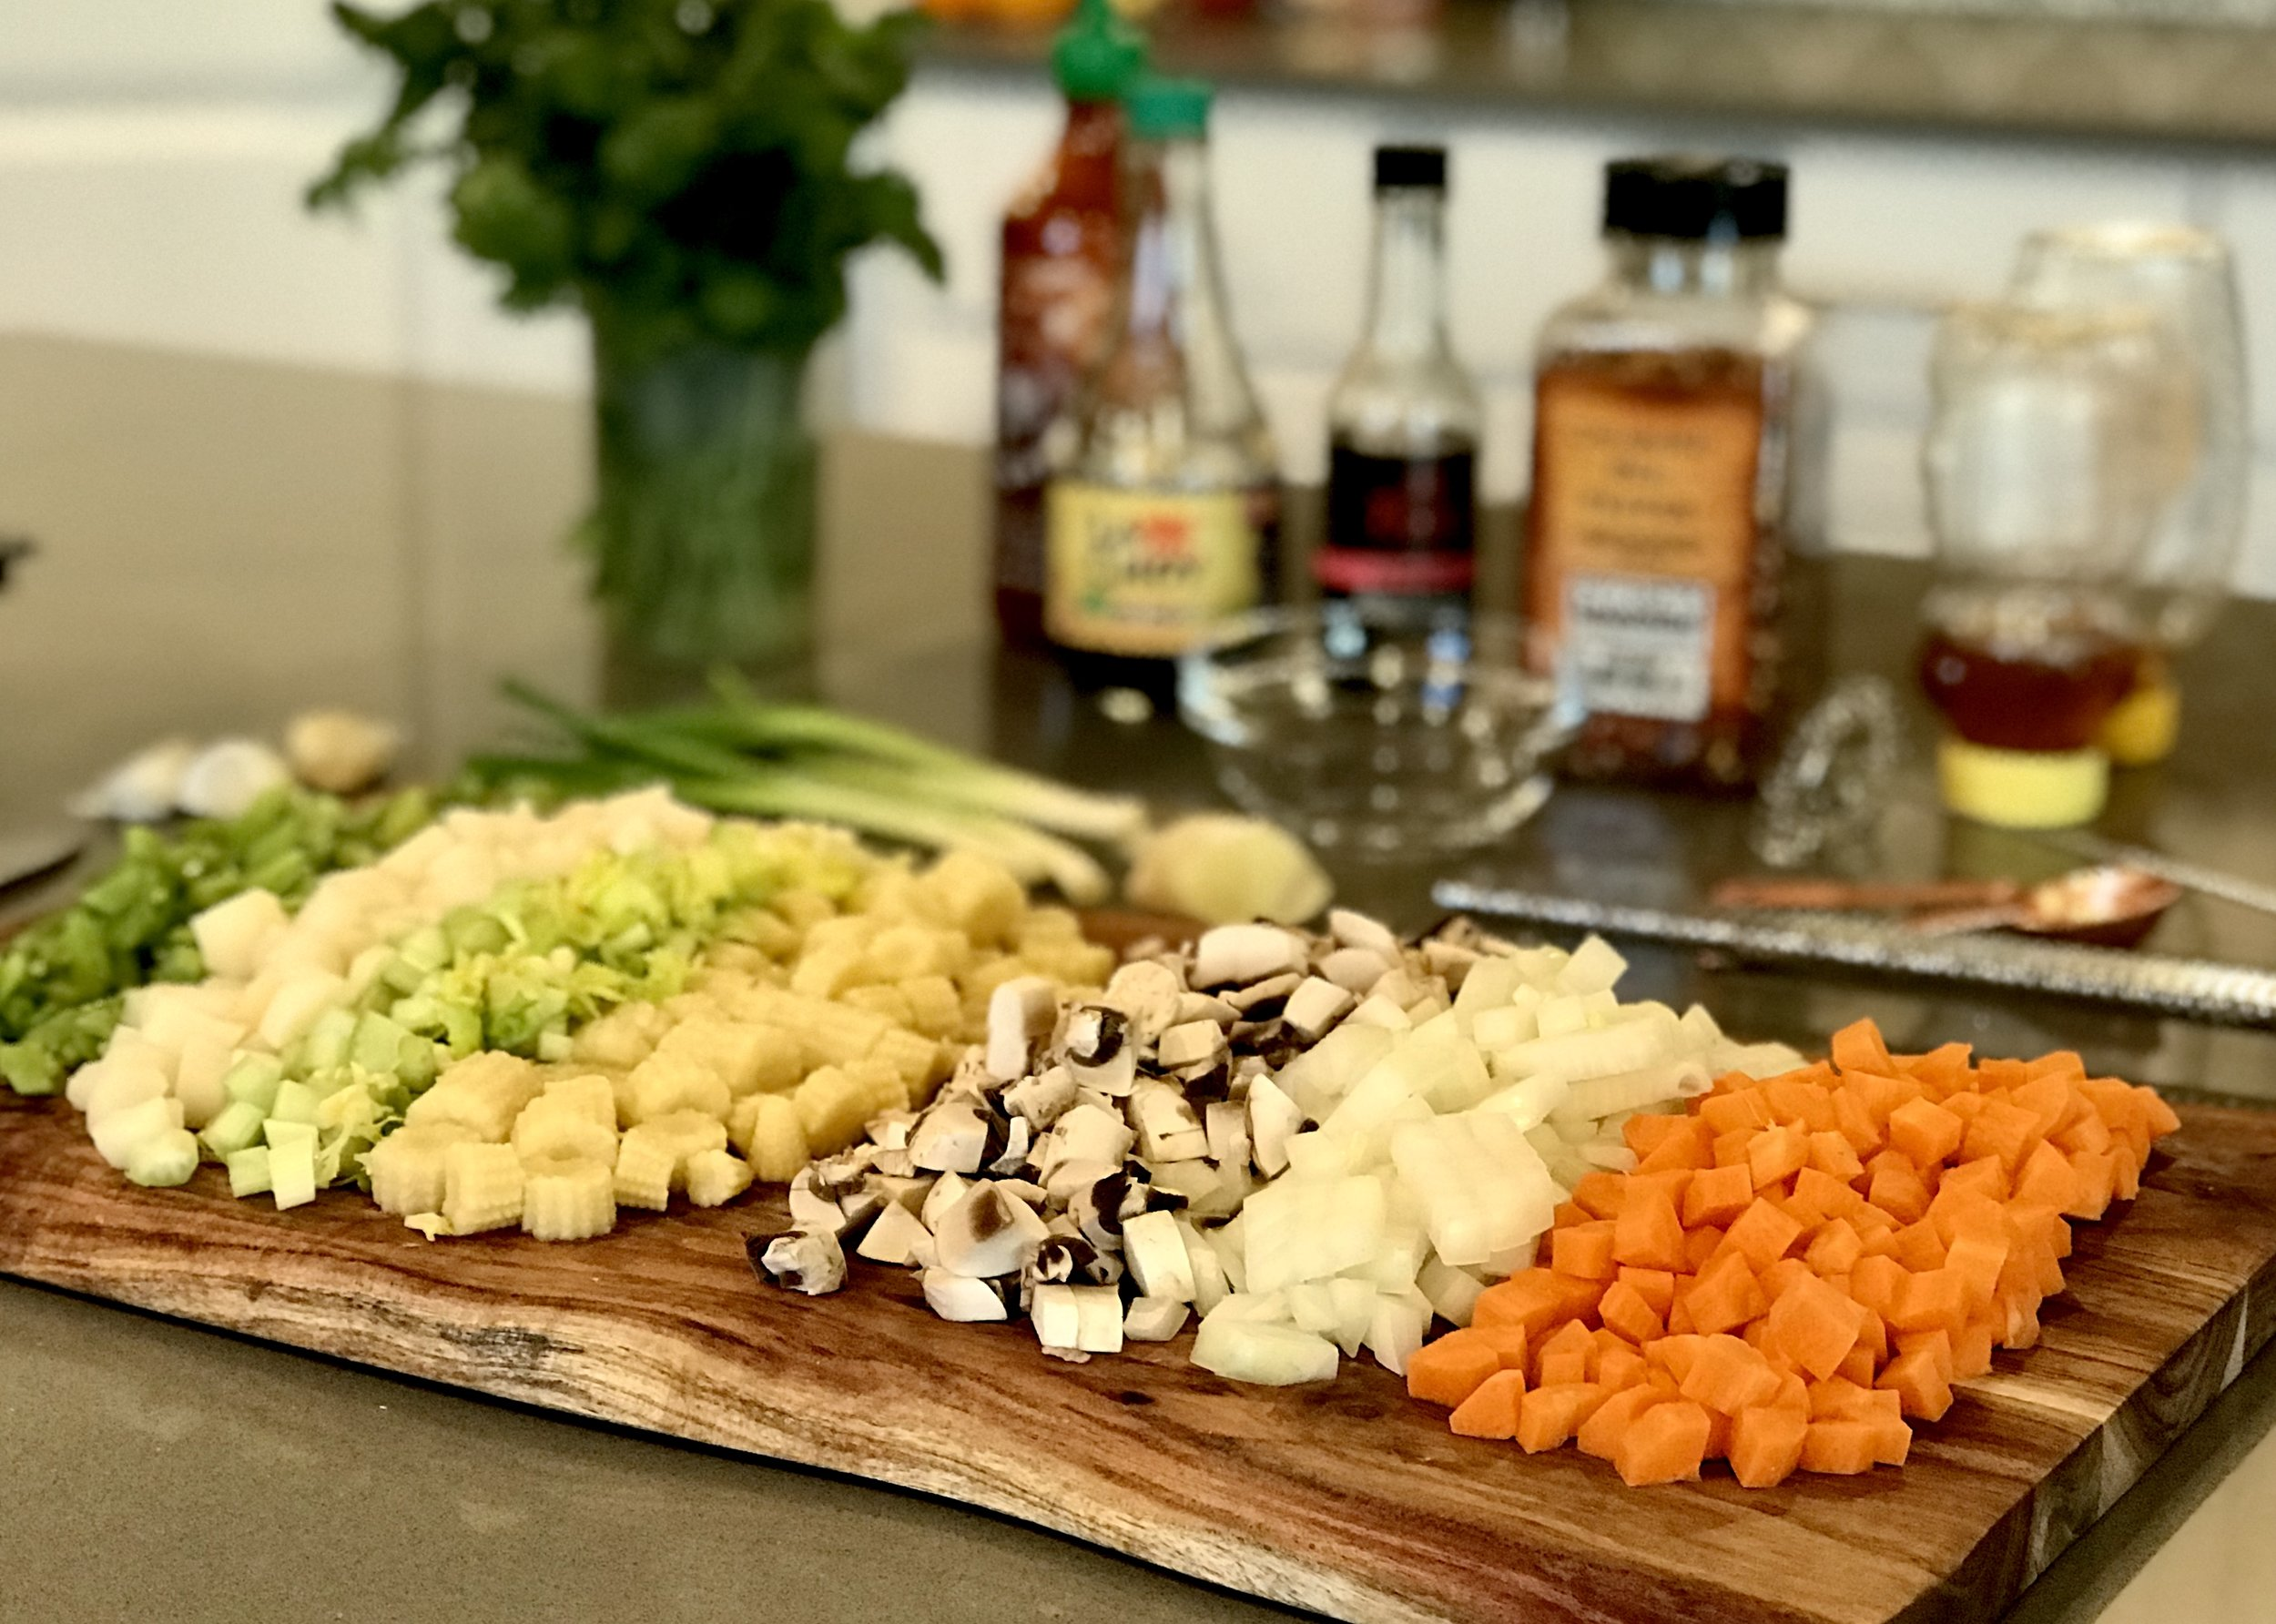 It's important to cut vegetables into consistently small pieces. Photo credit: Anita McVey/Picnic Life Foodie